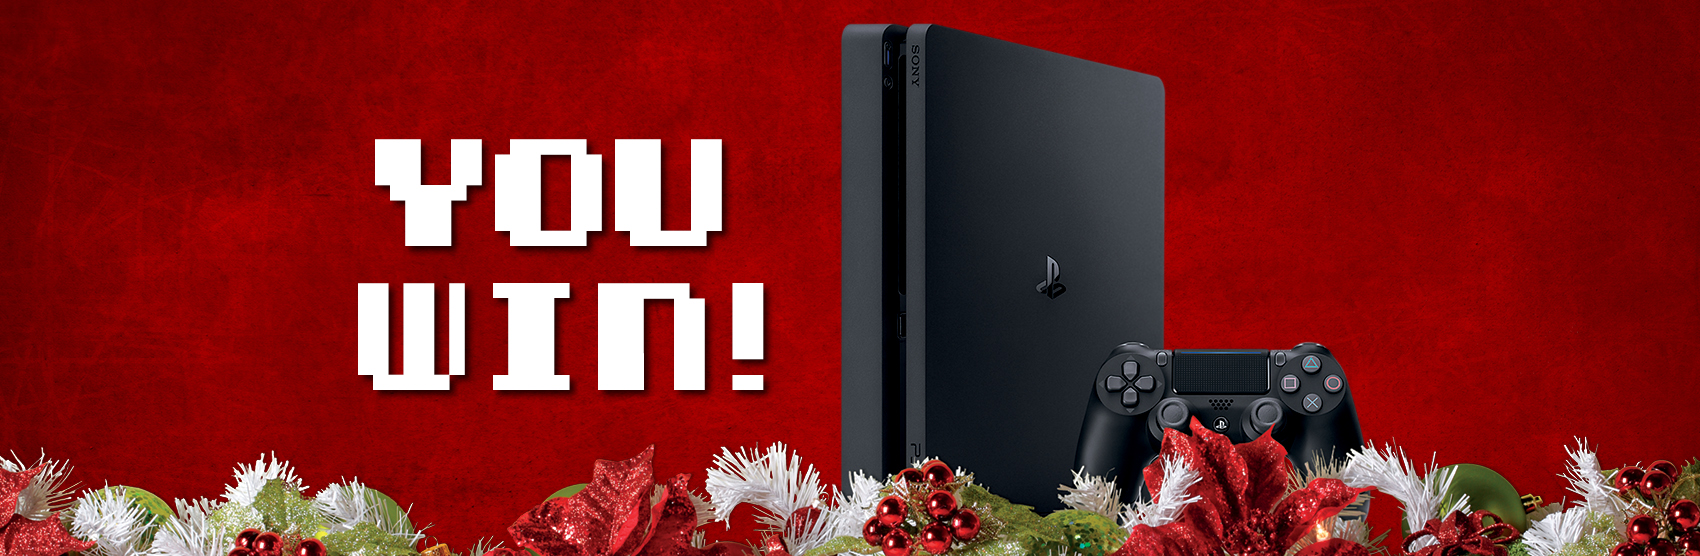 Holiday imagery with PlayStation 4 device